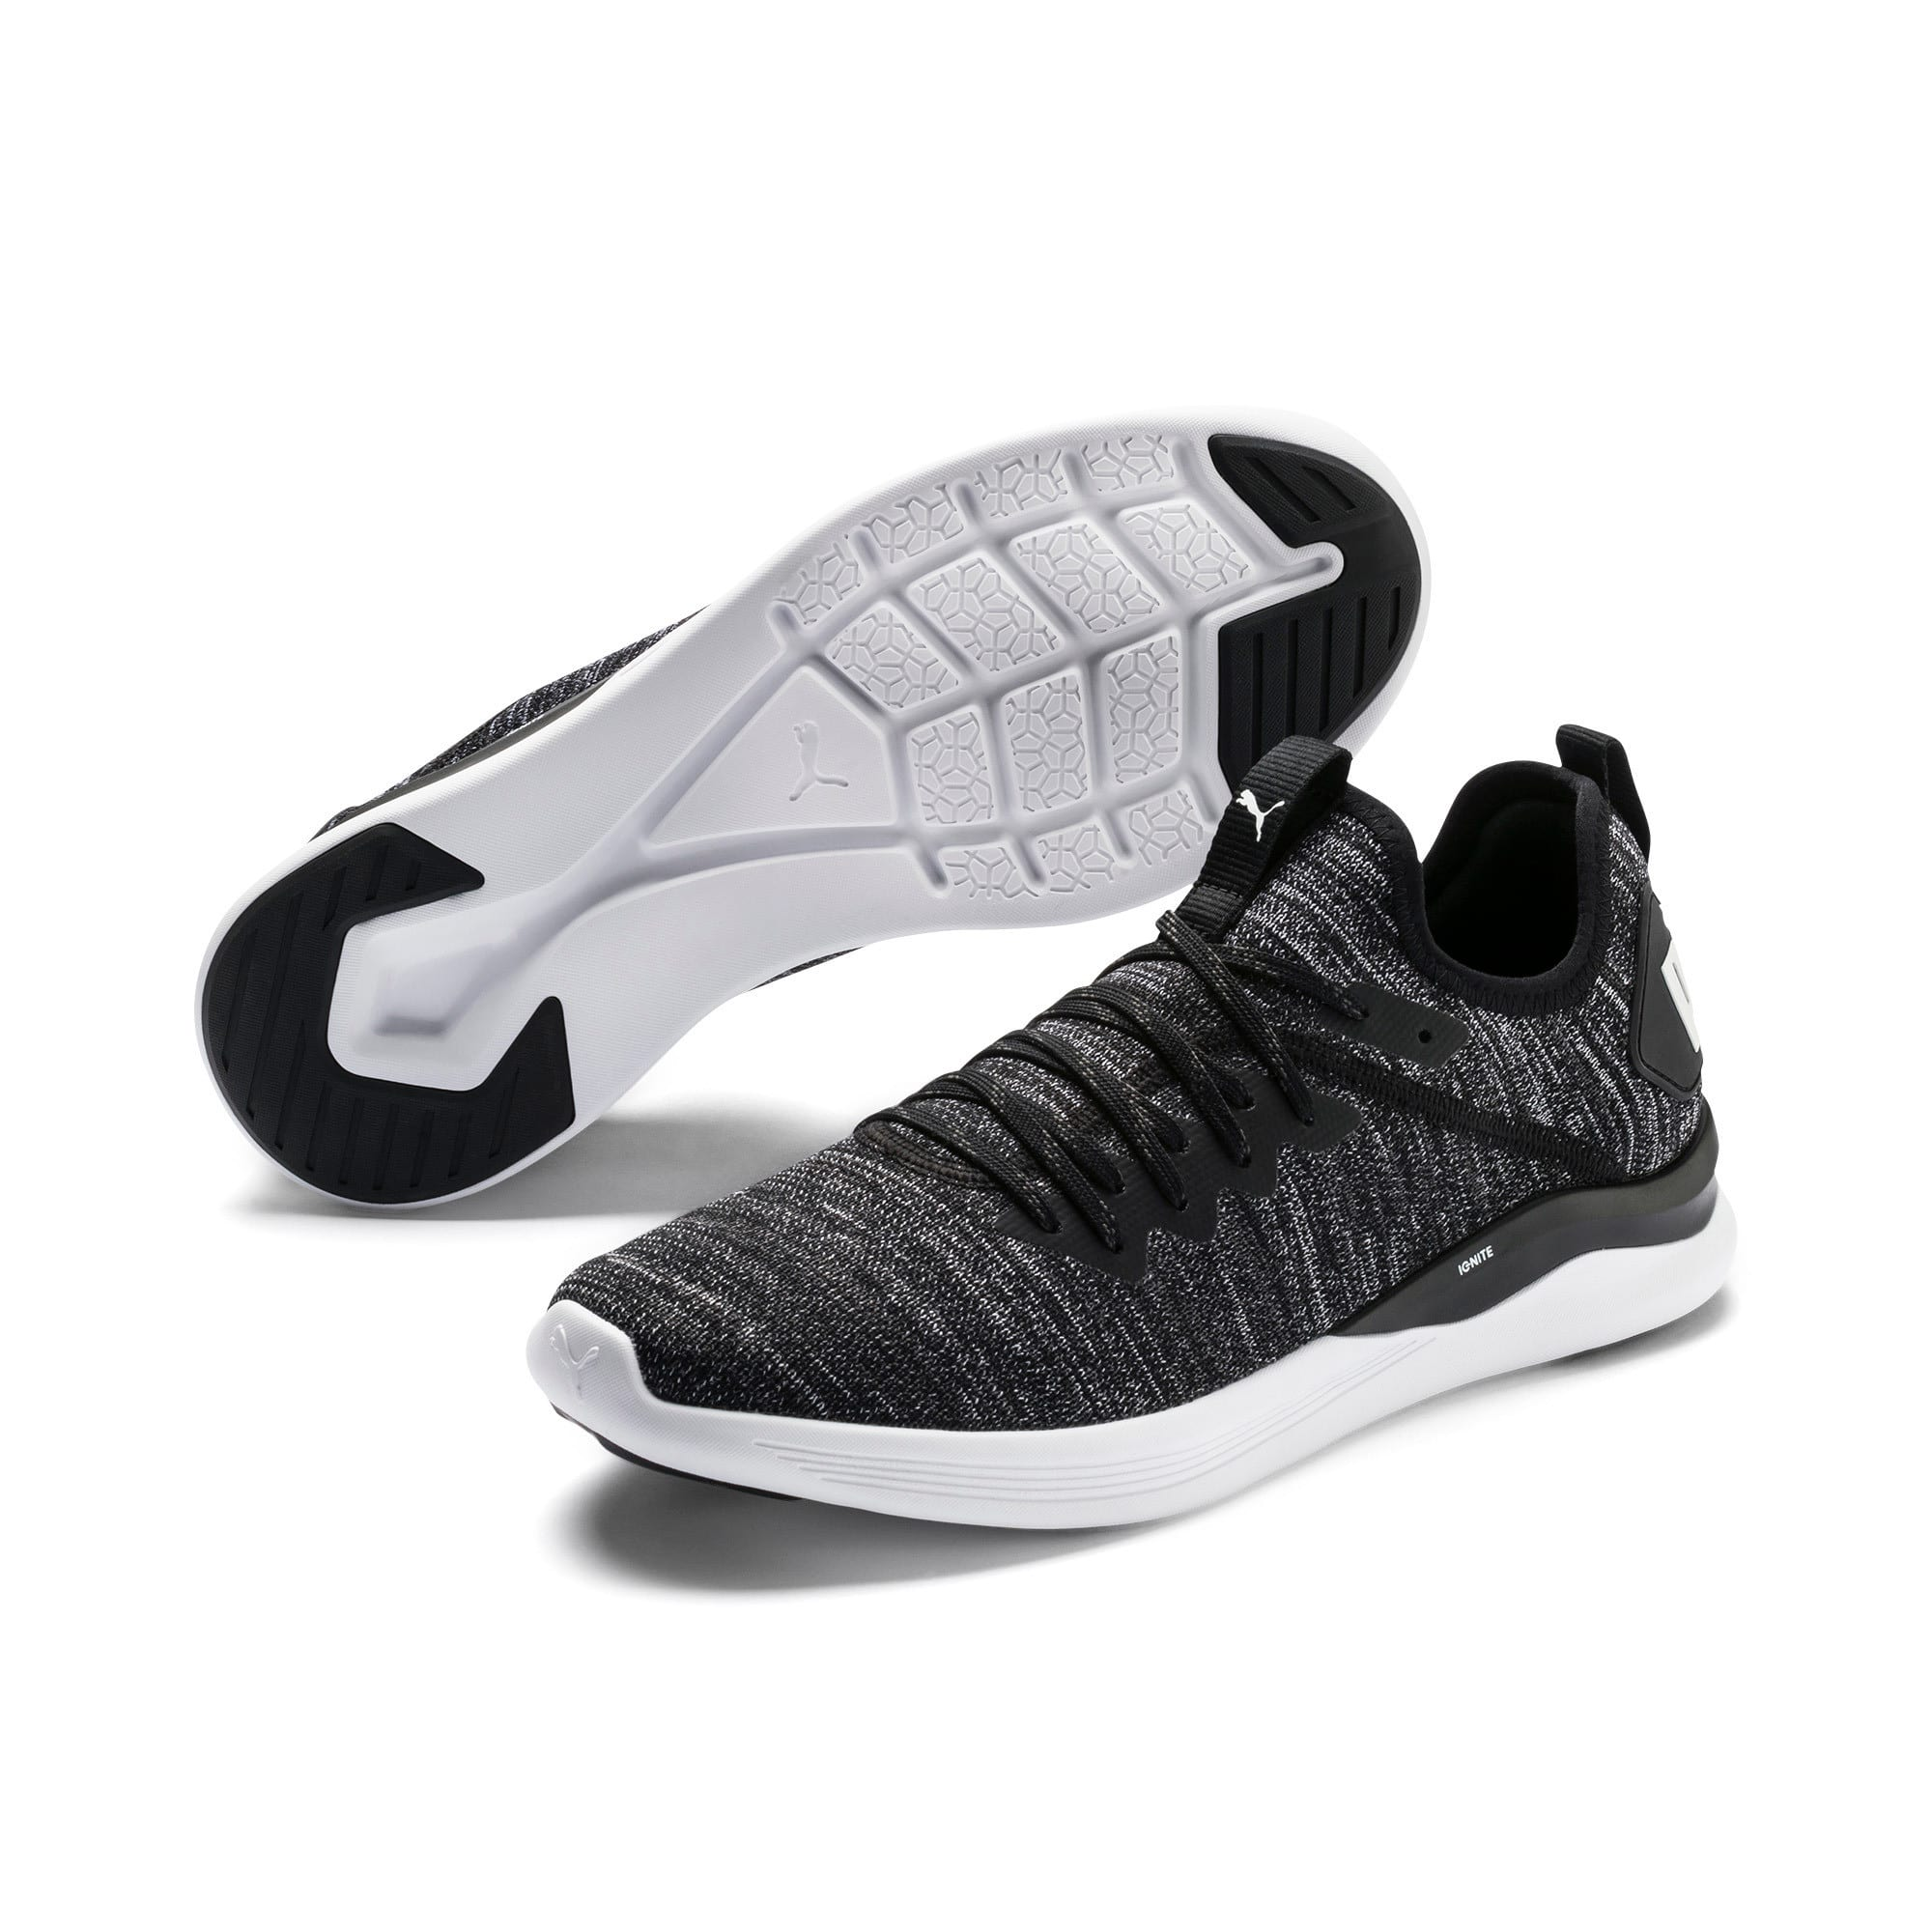 Thumbnail 2 of IGNITE Flash evoKNIT Men's Training Shoes, Black-Asphalt-White, medium-IND